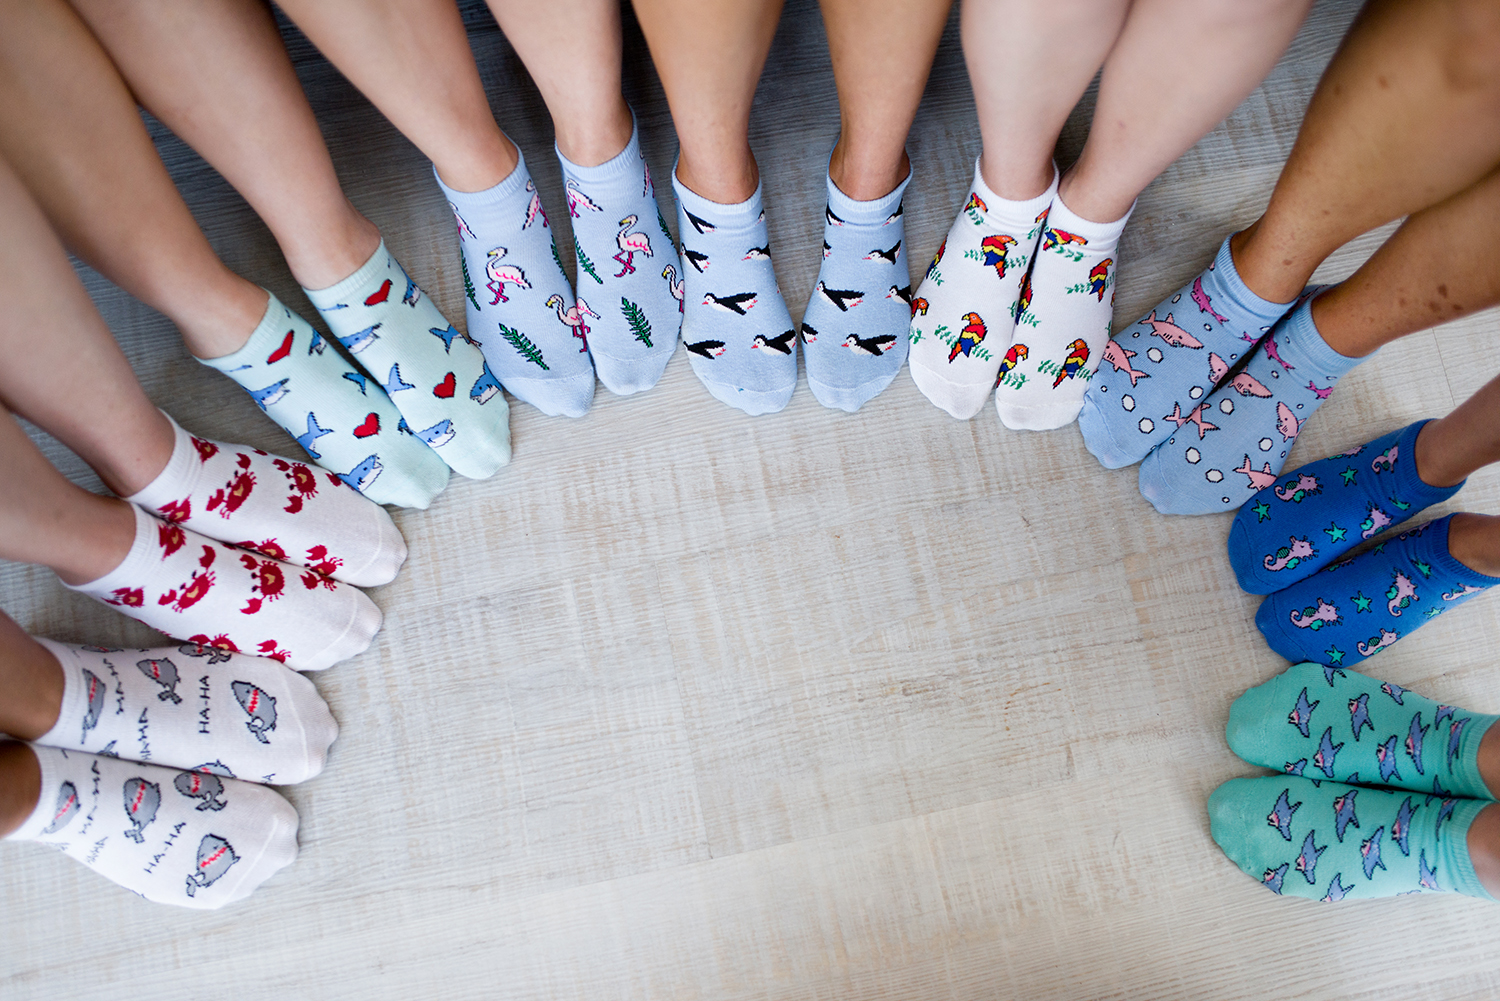 Maureen Socks Girls.jpg